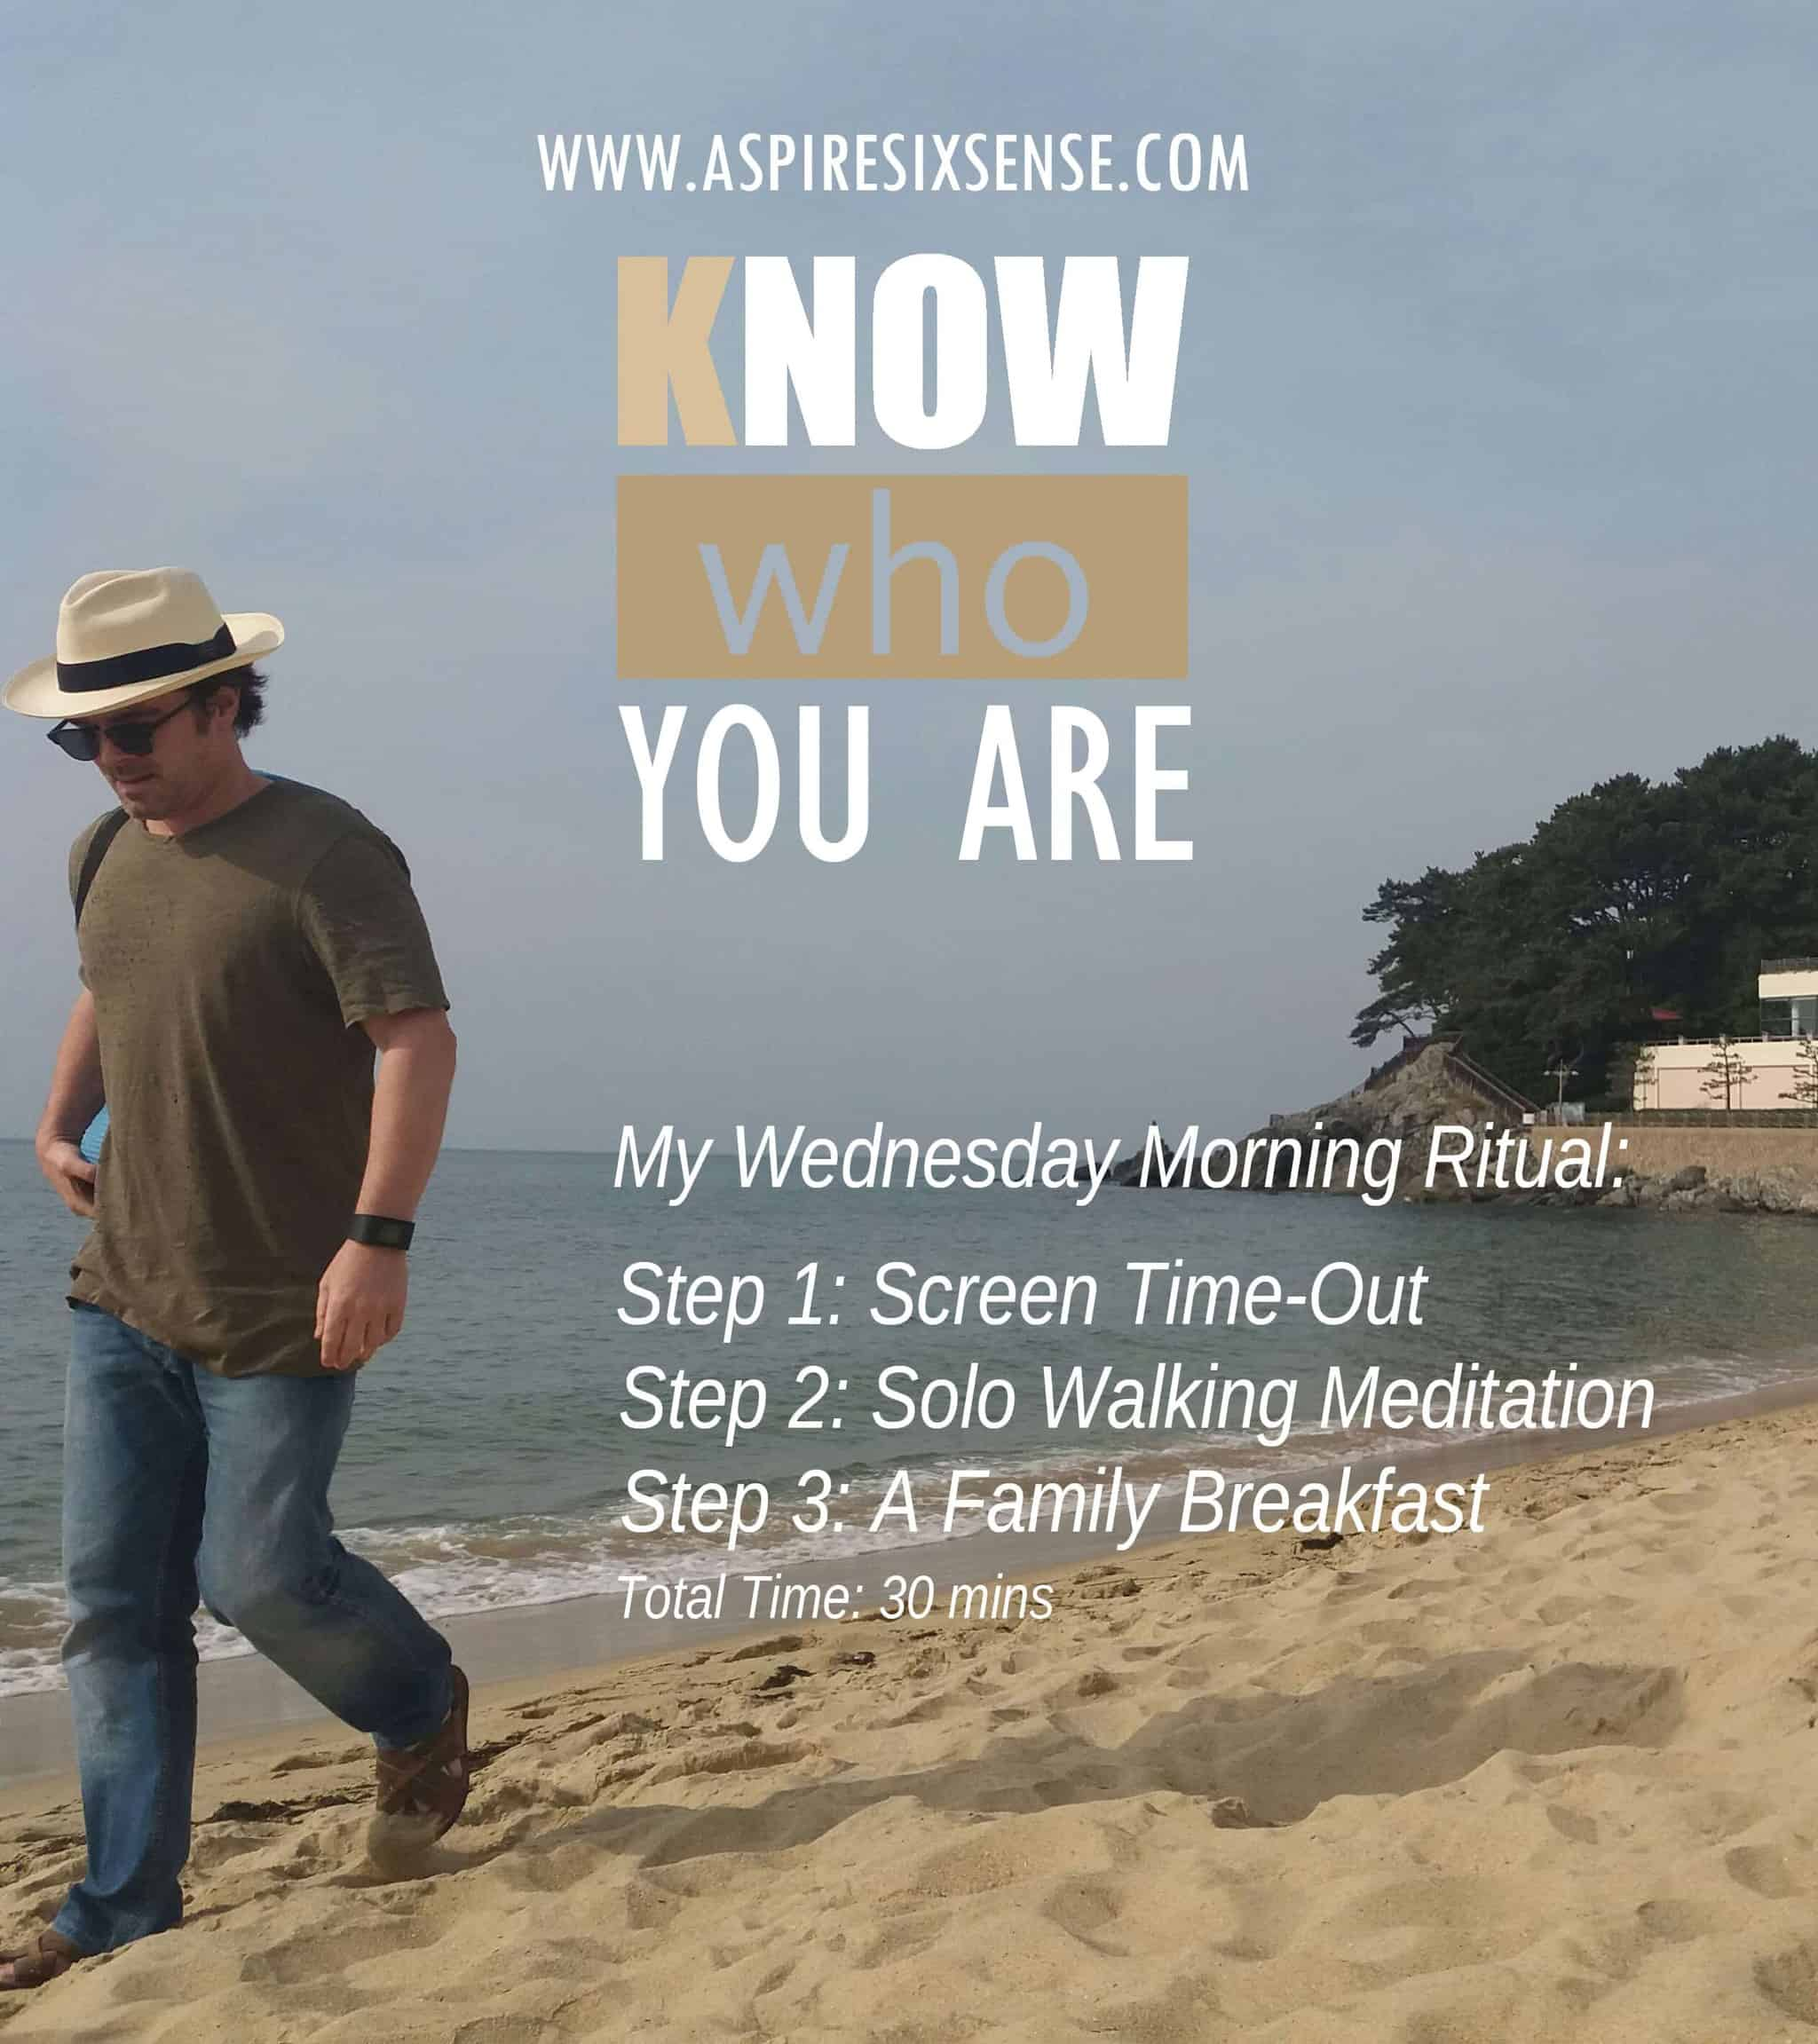 Here is my preferred start of the day as I was snapped at Haeundae Beach Korea during my daily morni